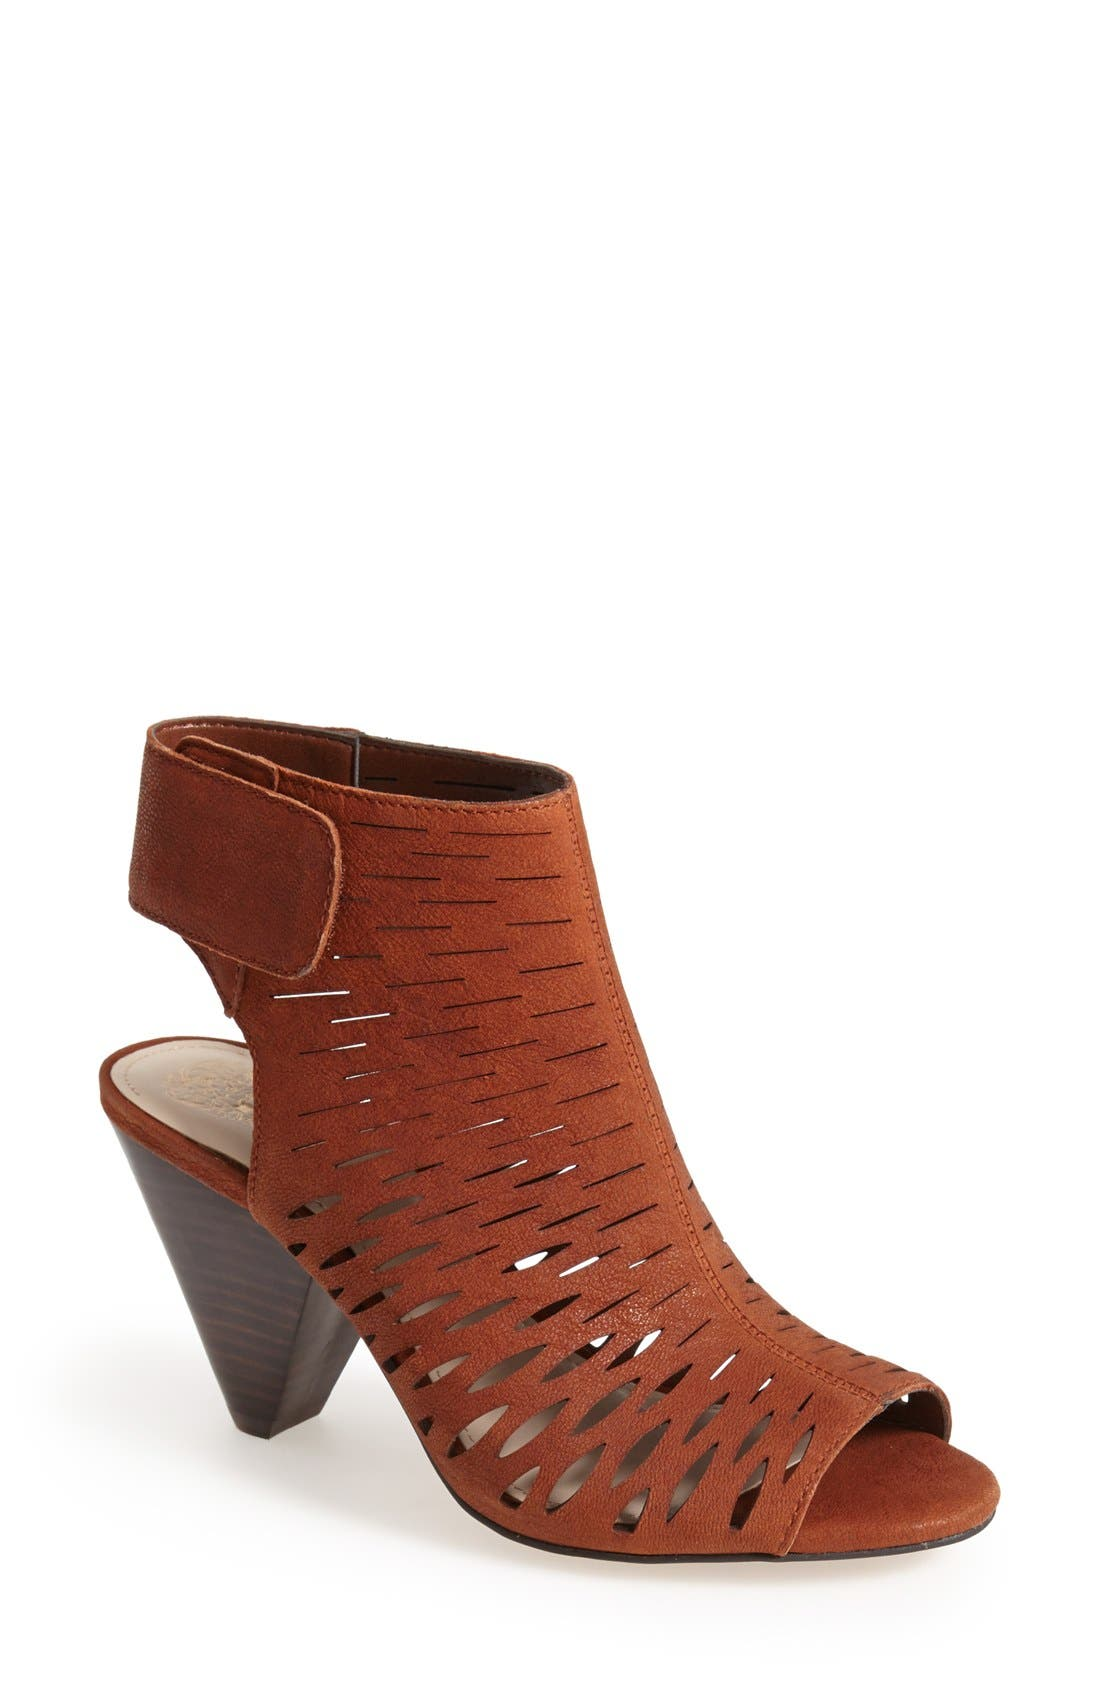 'Estell' Open Toe Bootie,                         Main,                         color, Dark Brown